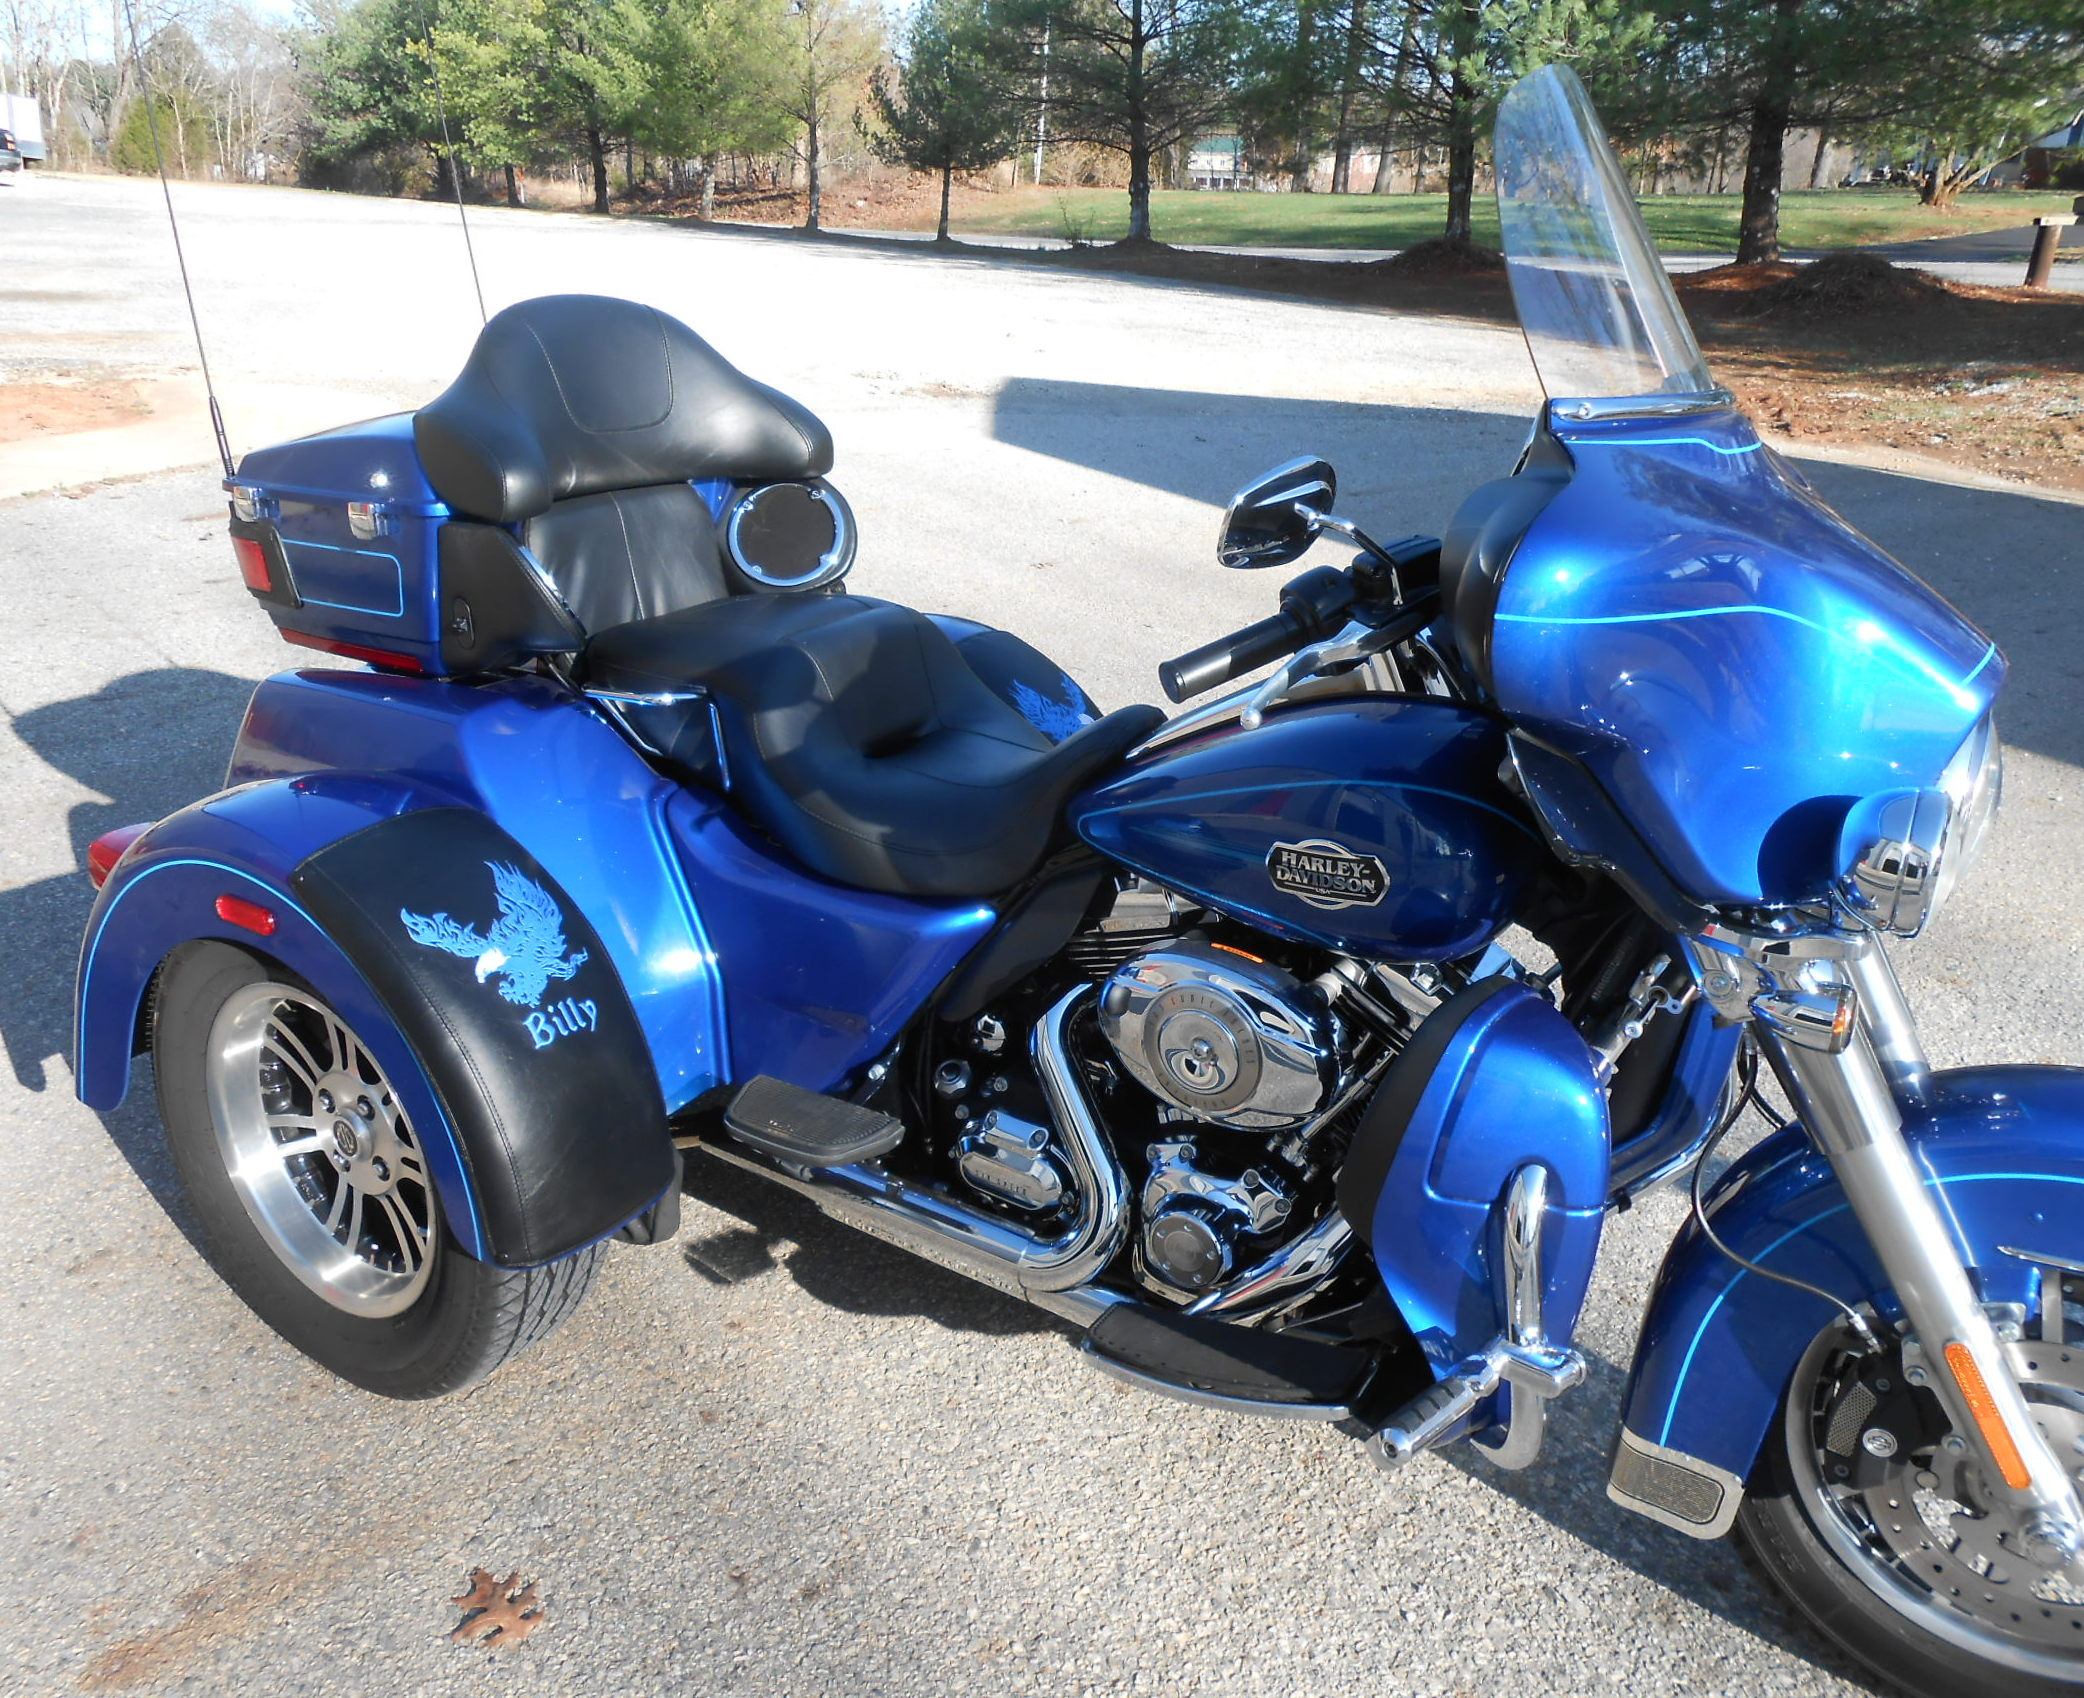 Harley Tri Glide - Flaming Eagle with Names